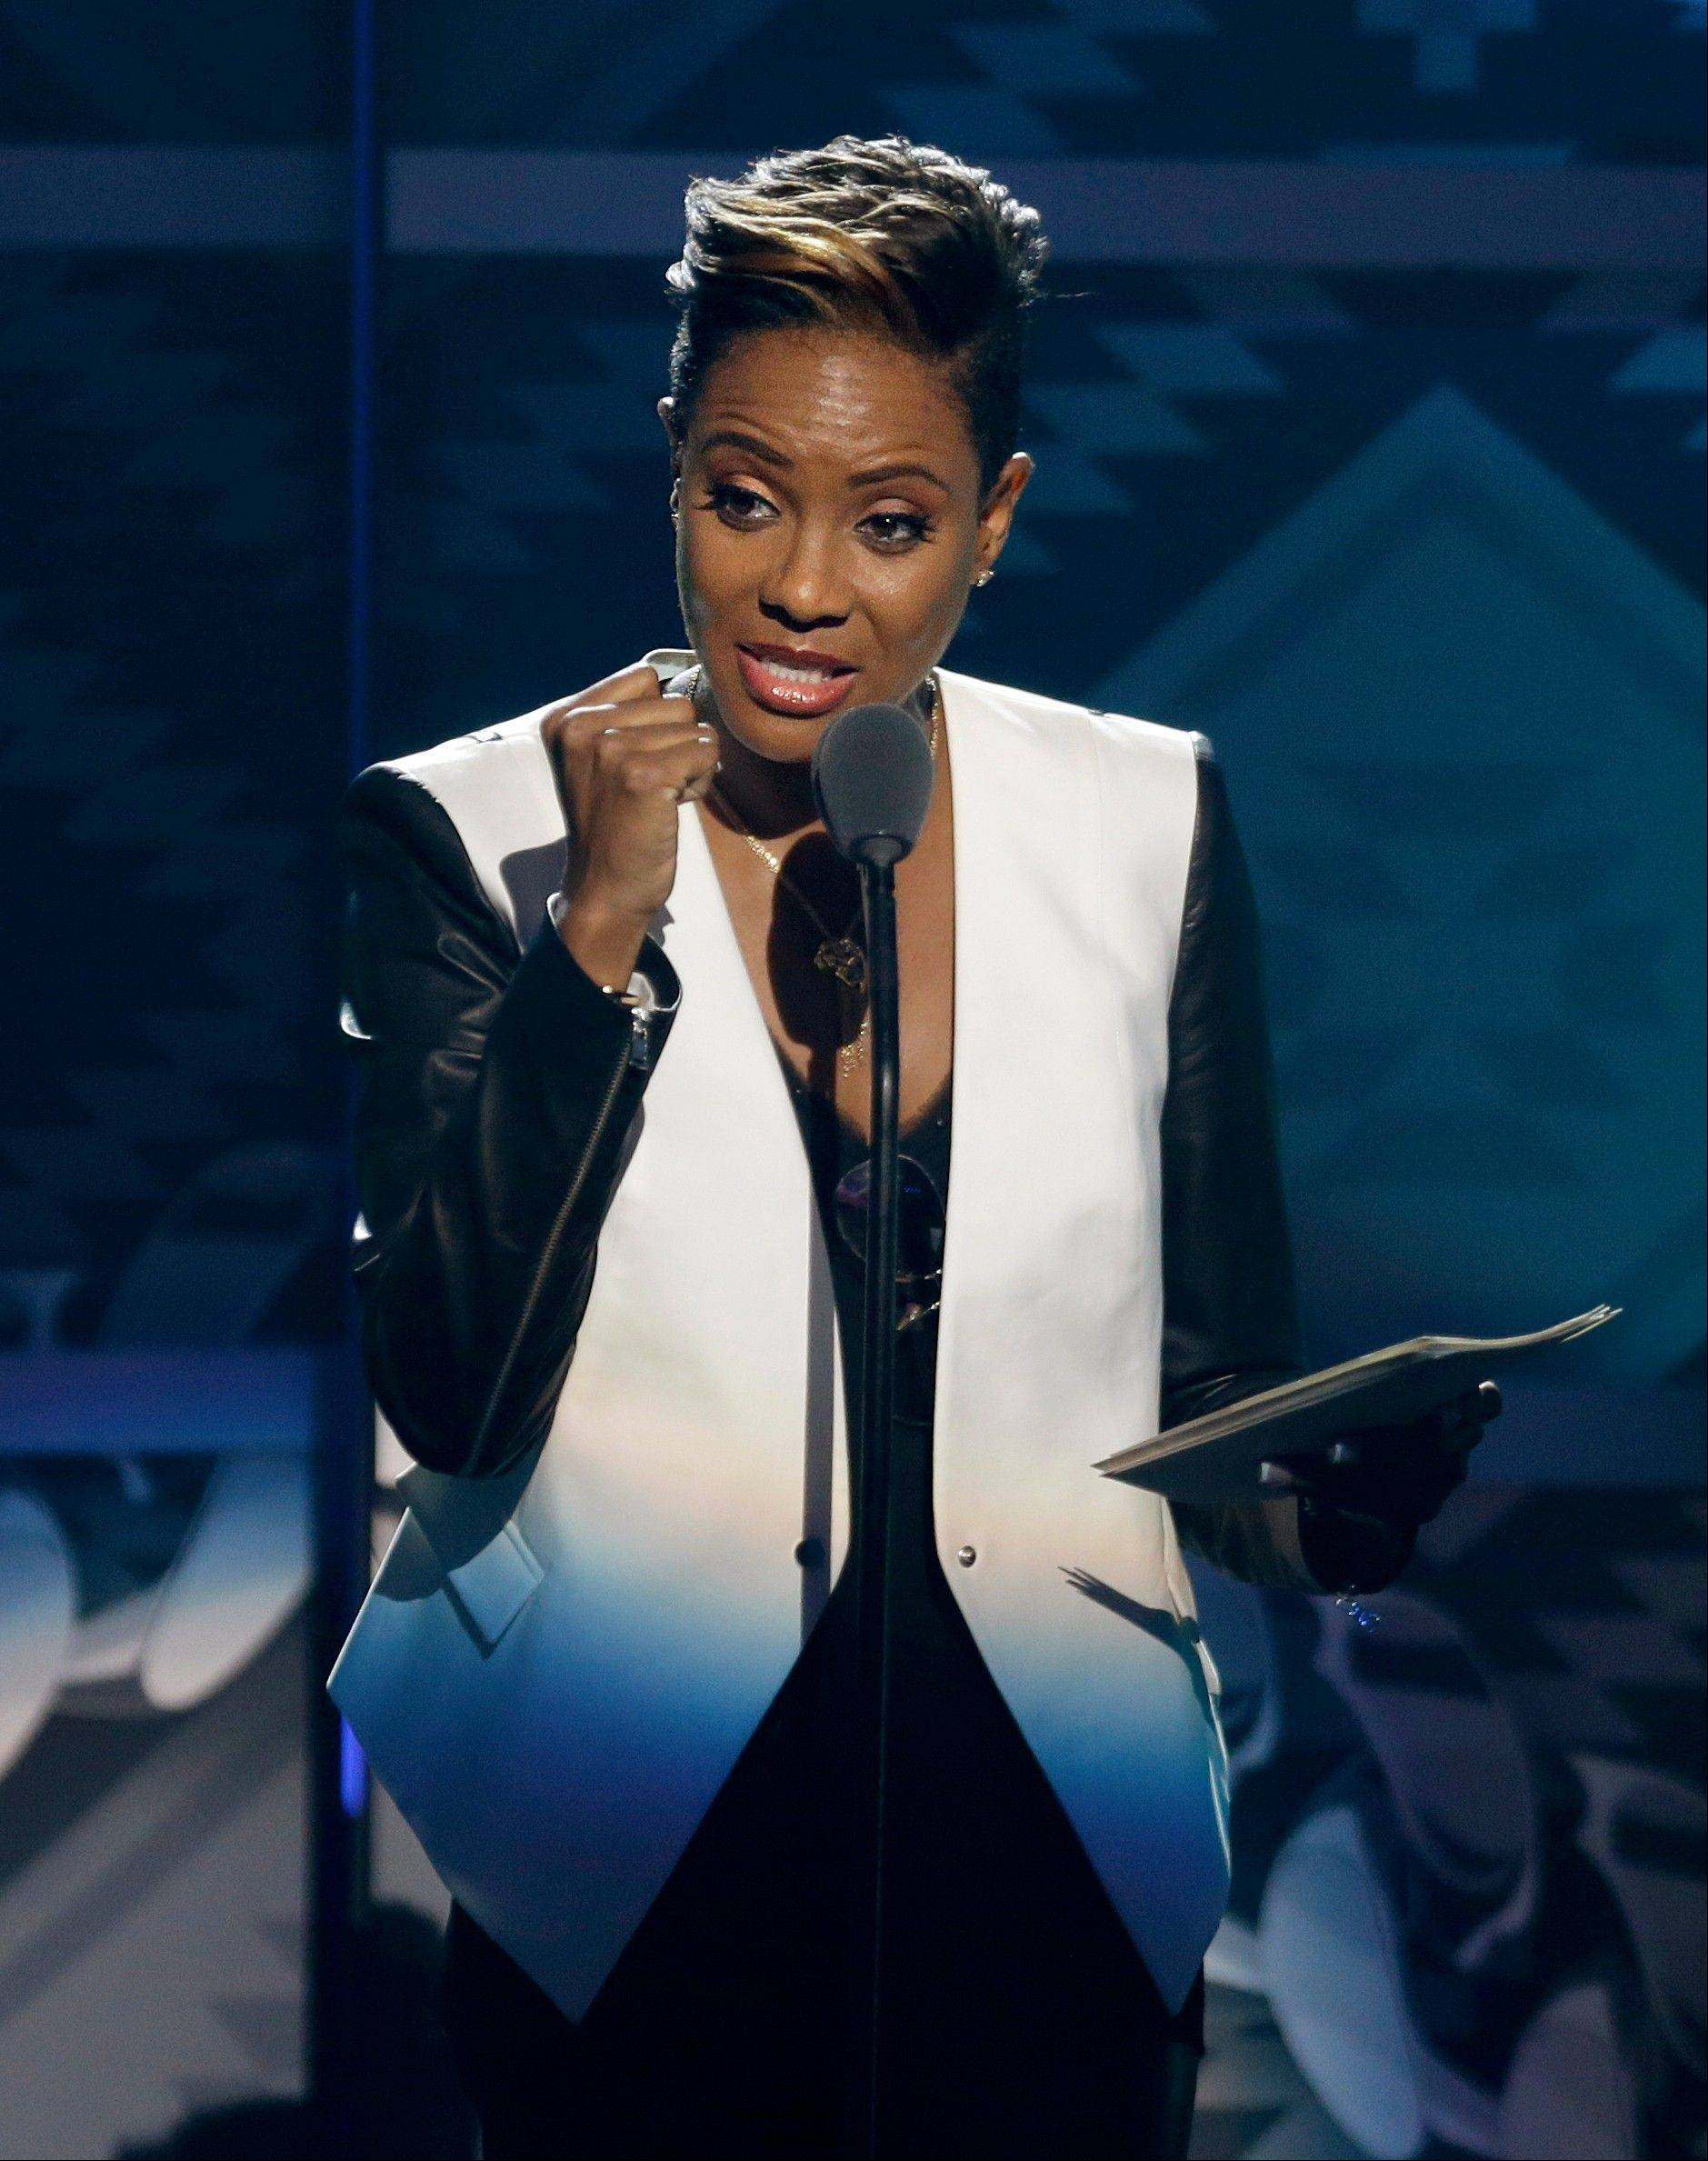 Rapper MC Lyte accepts the �I Am Hip Hop Award� during the BET Hip Hop Awards Saturday in Atlanta.